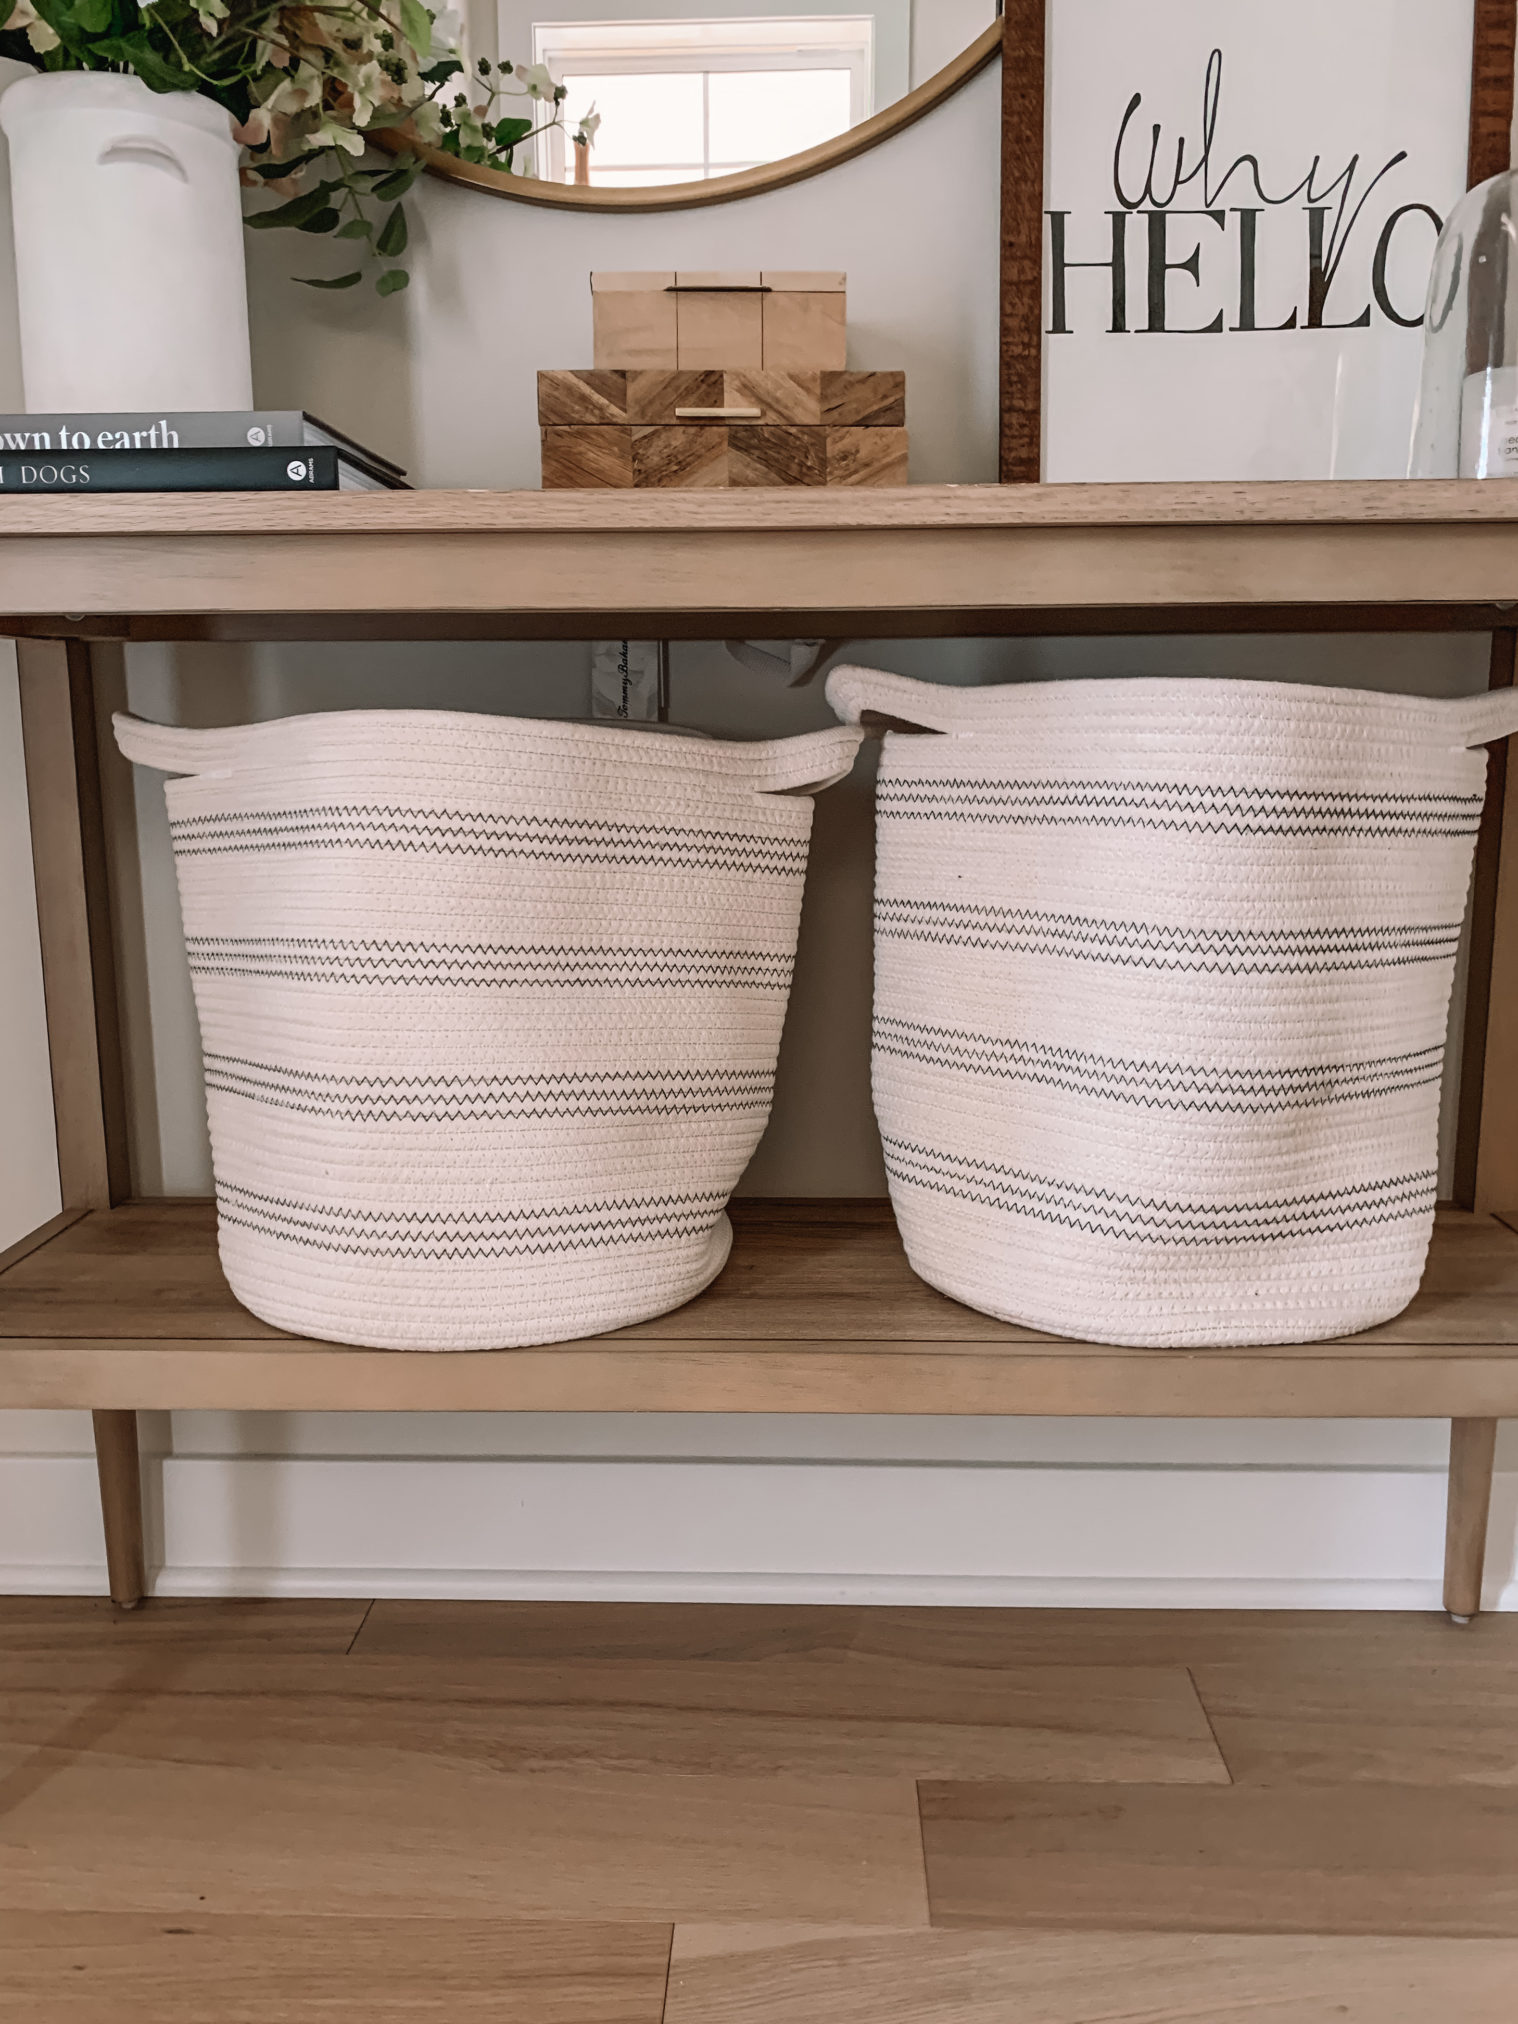 amazon finds, amazon home, home organization, woven bins, home storage, entry way organization